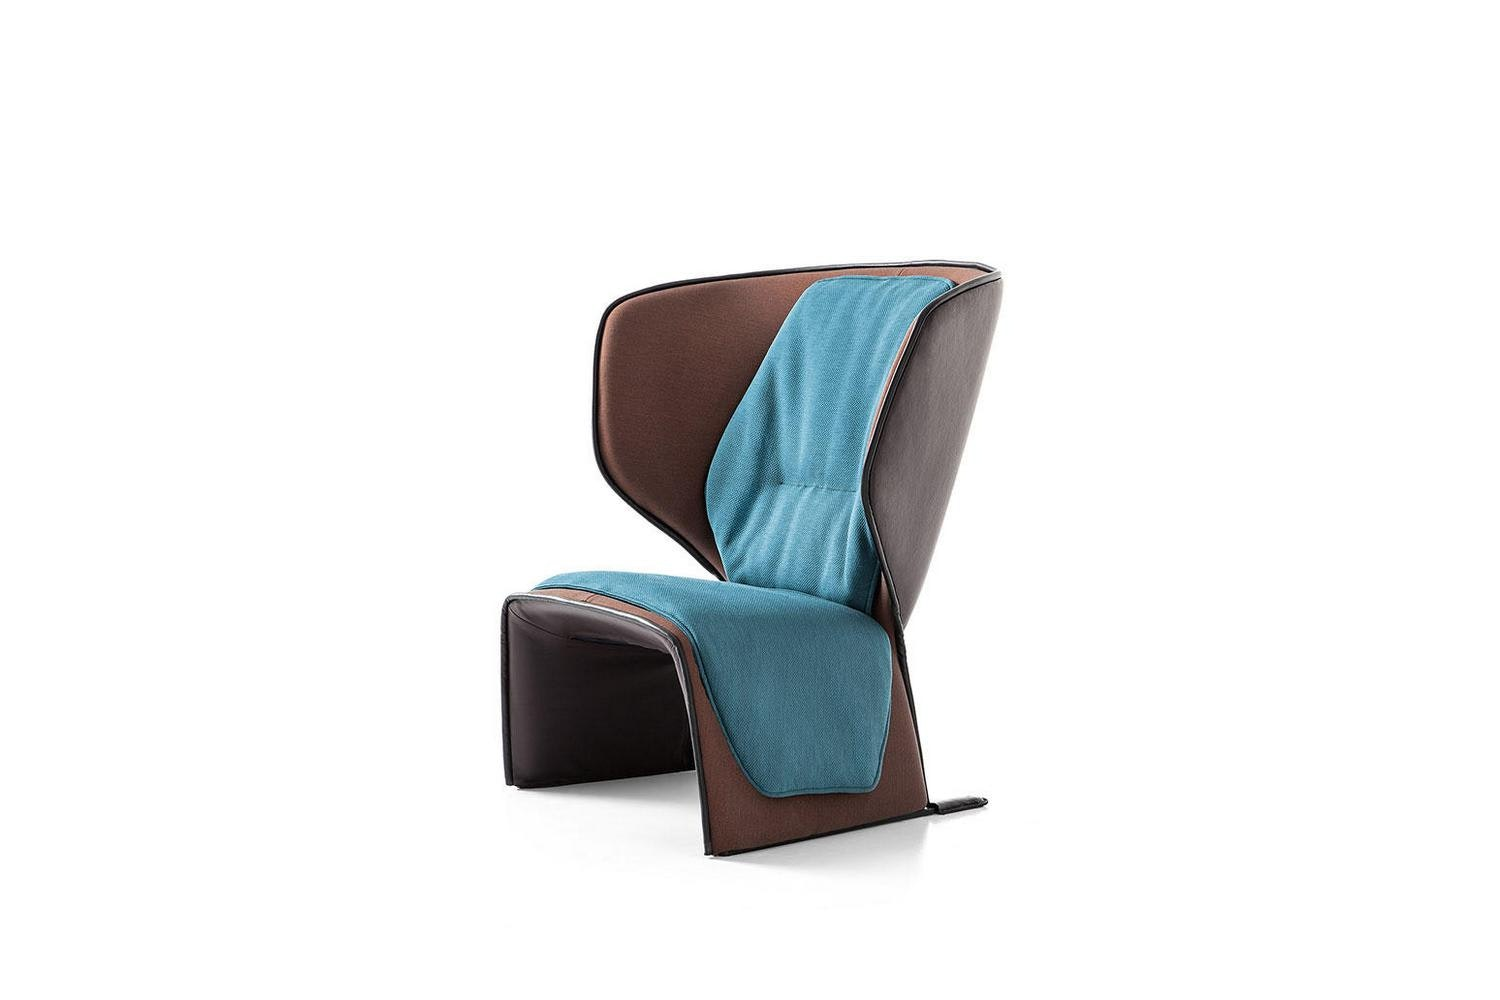 570 Gender Armchair by Patricia Urquiola for Cassina